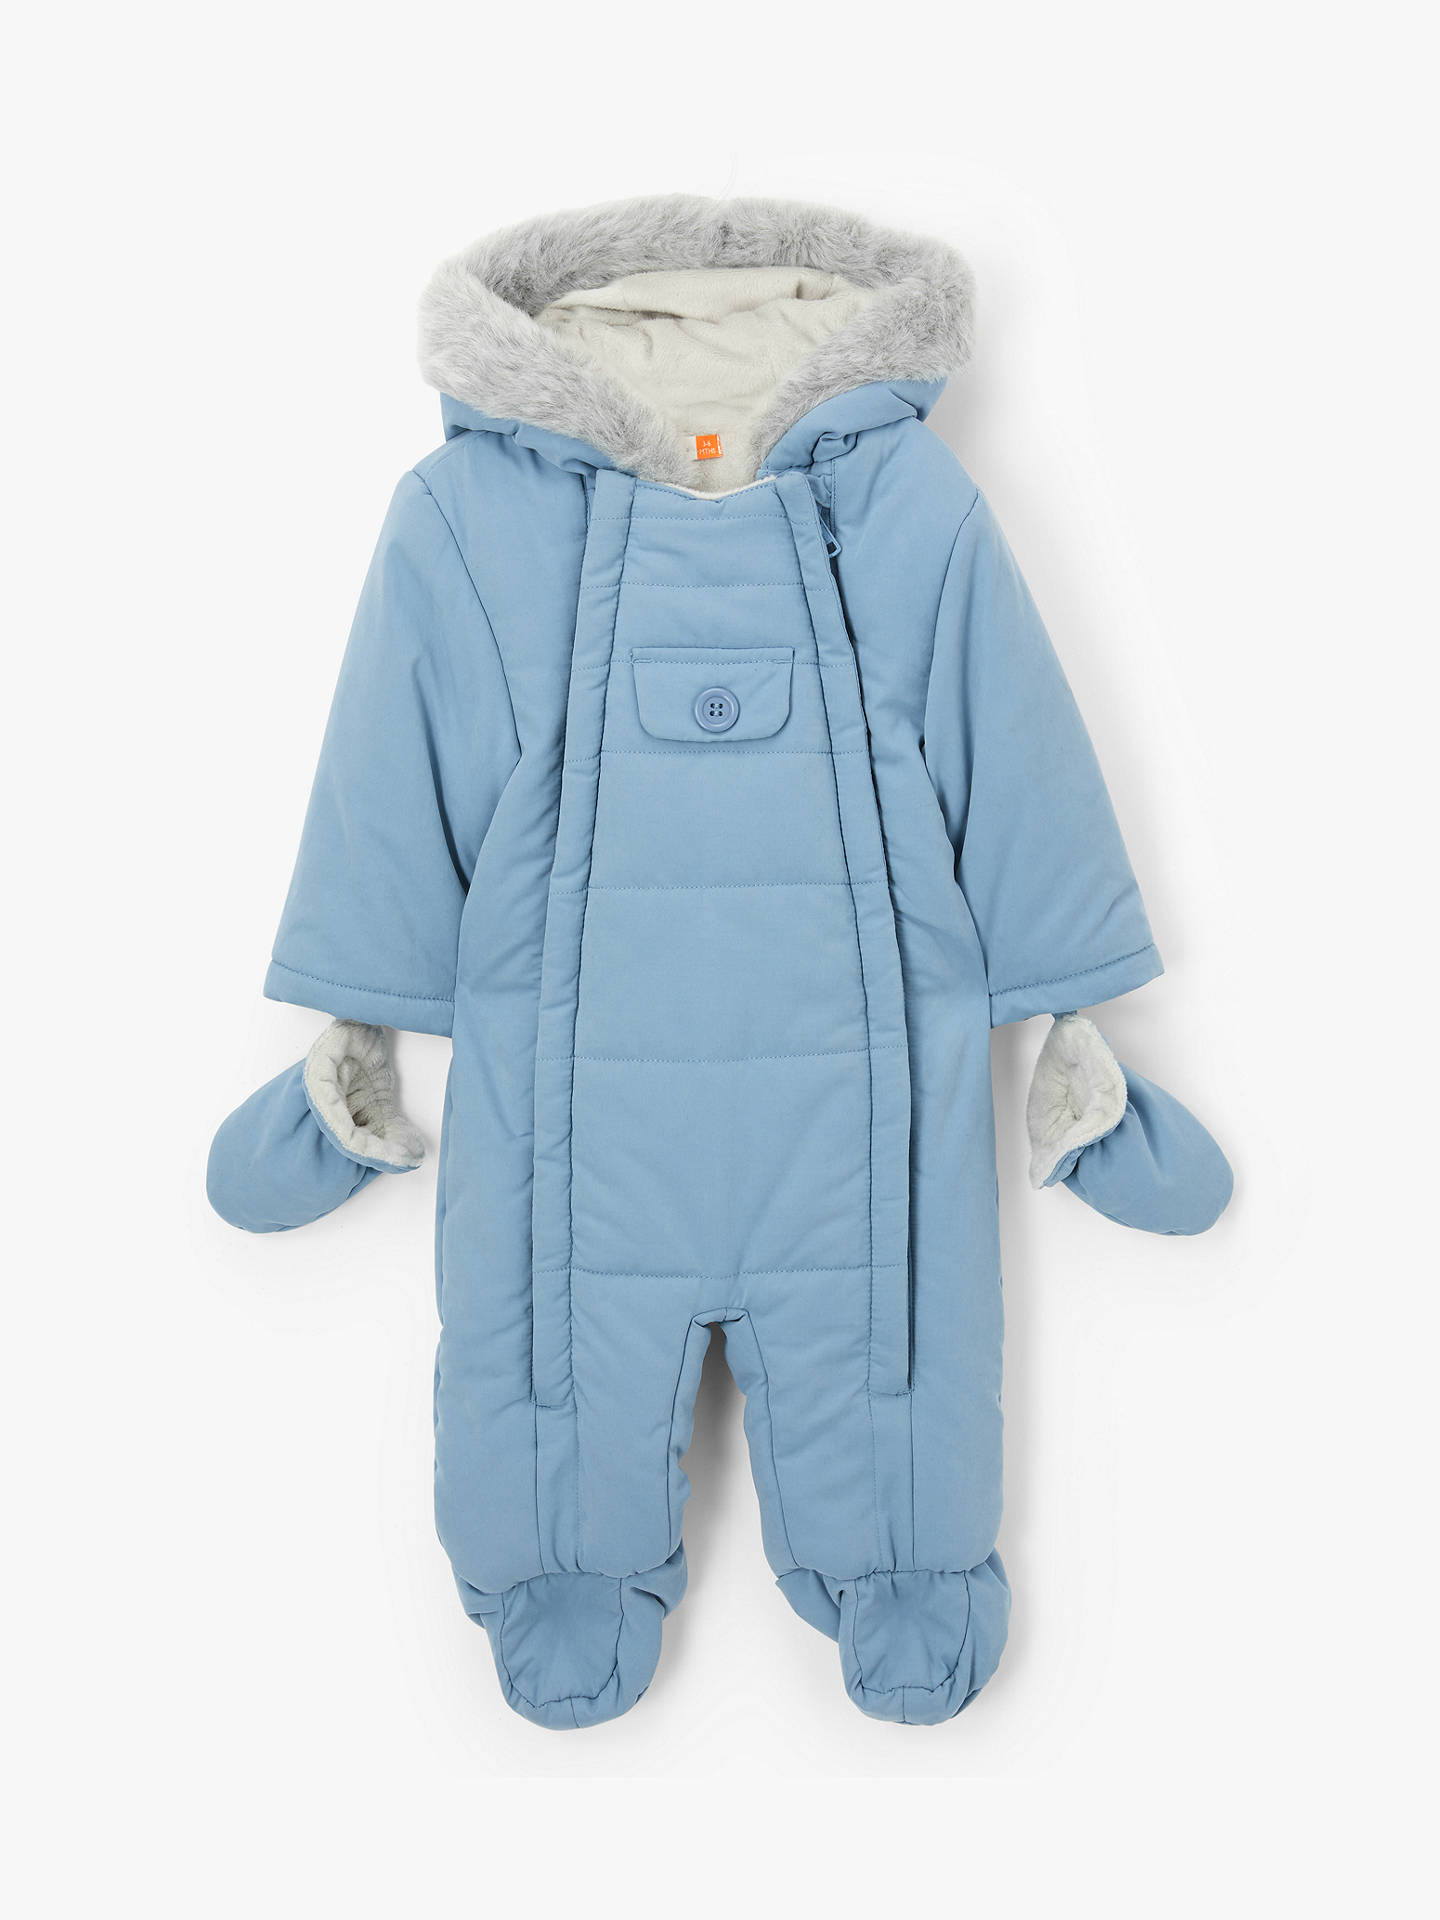 136c48aa1 John Lewis   Partners Baby Snowsuit at John Lewis   Partners